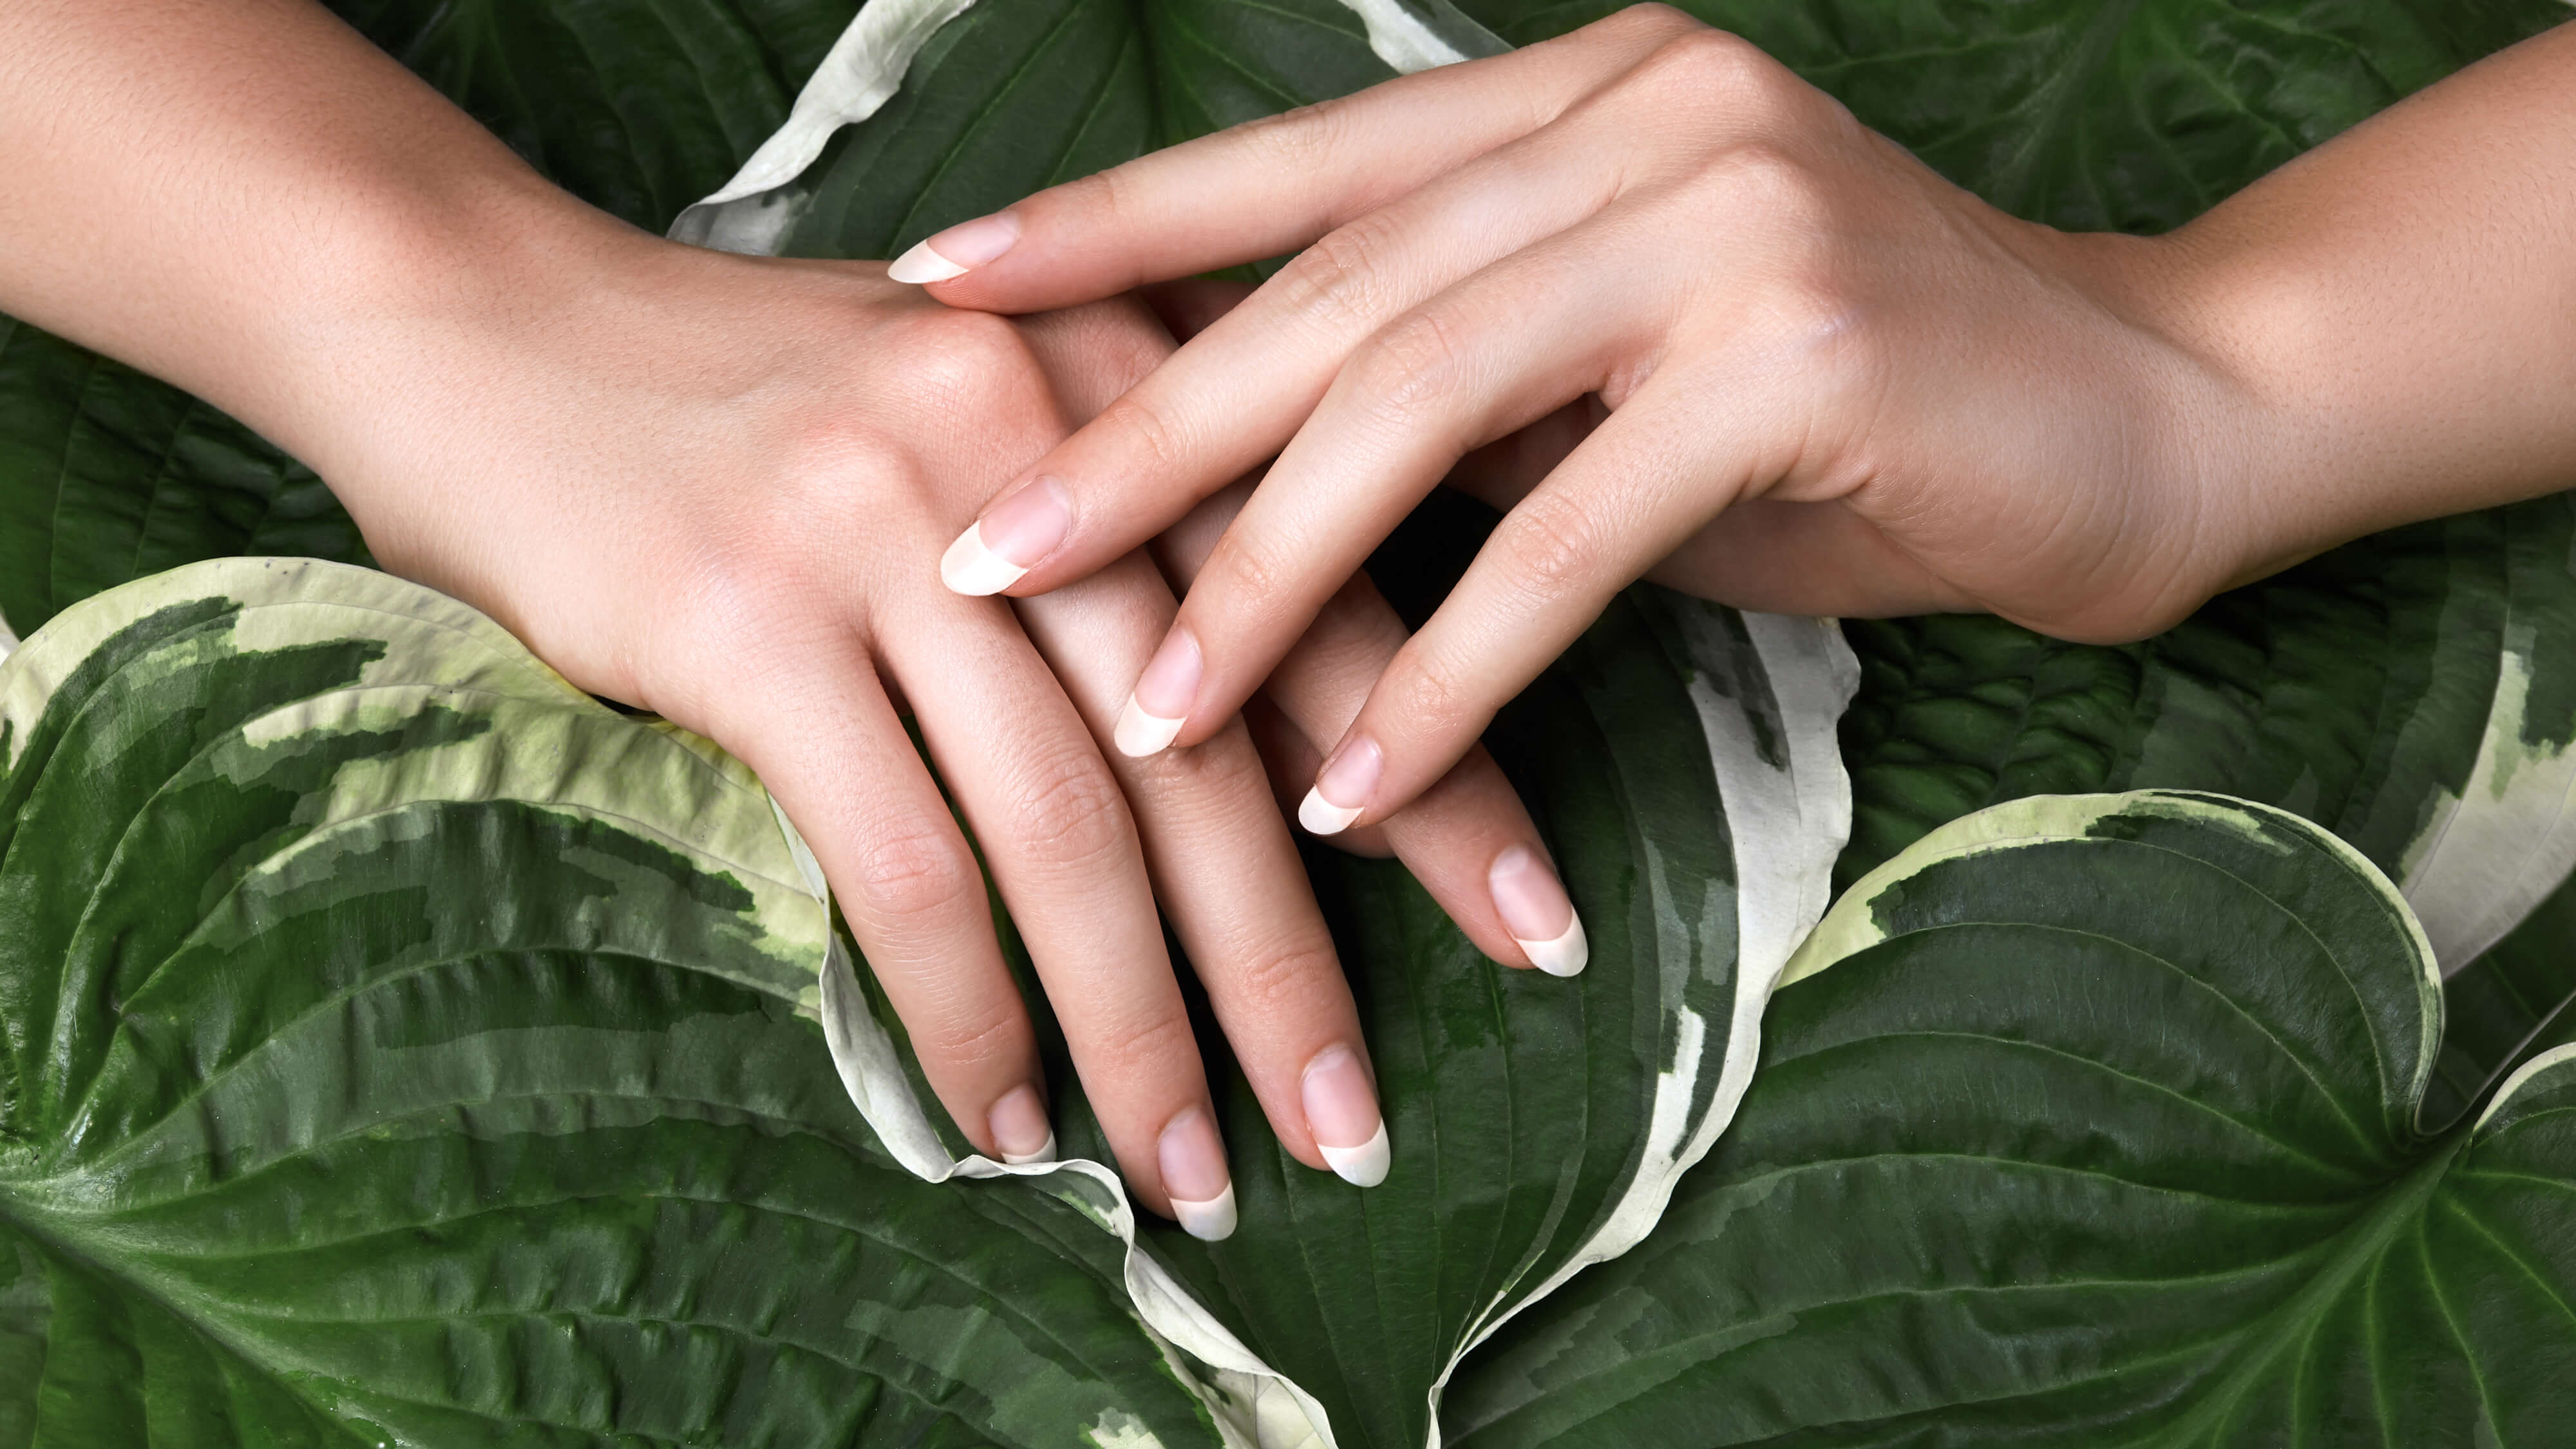 Beautifully french manicured hands placed one over the other in front of giant green leaves